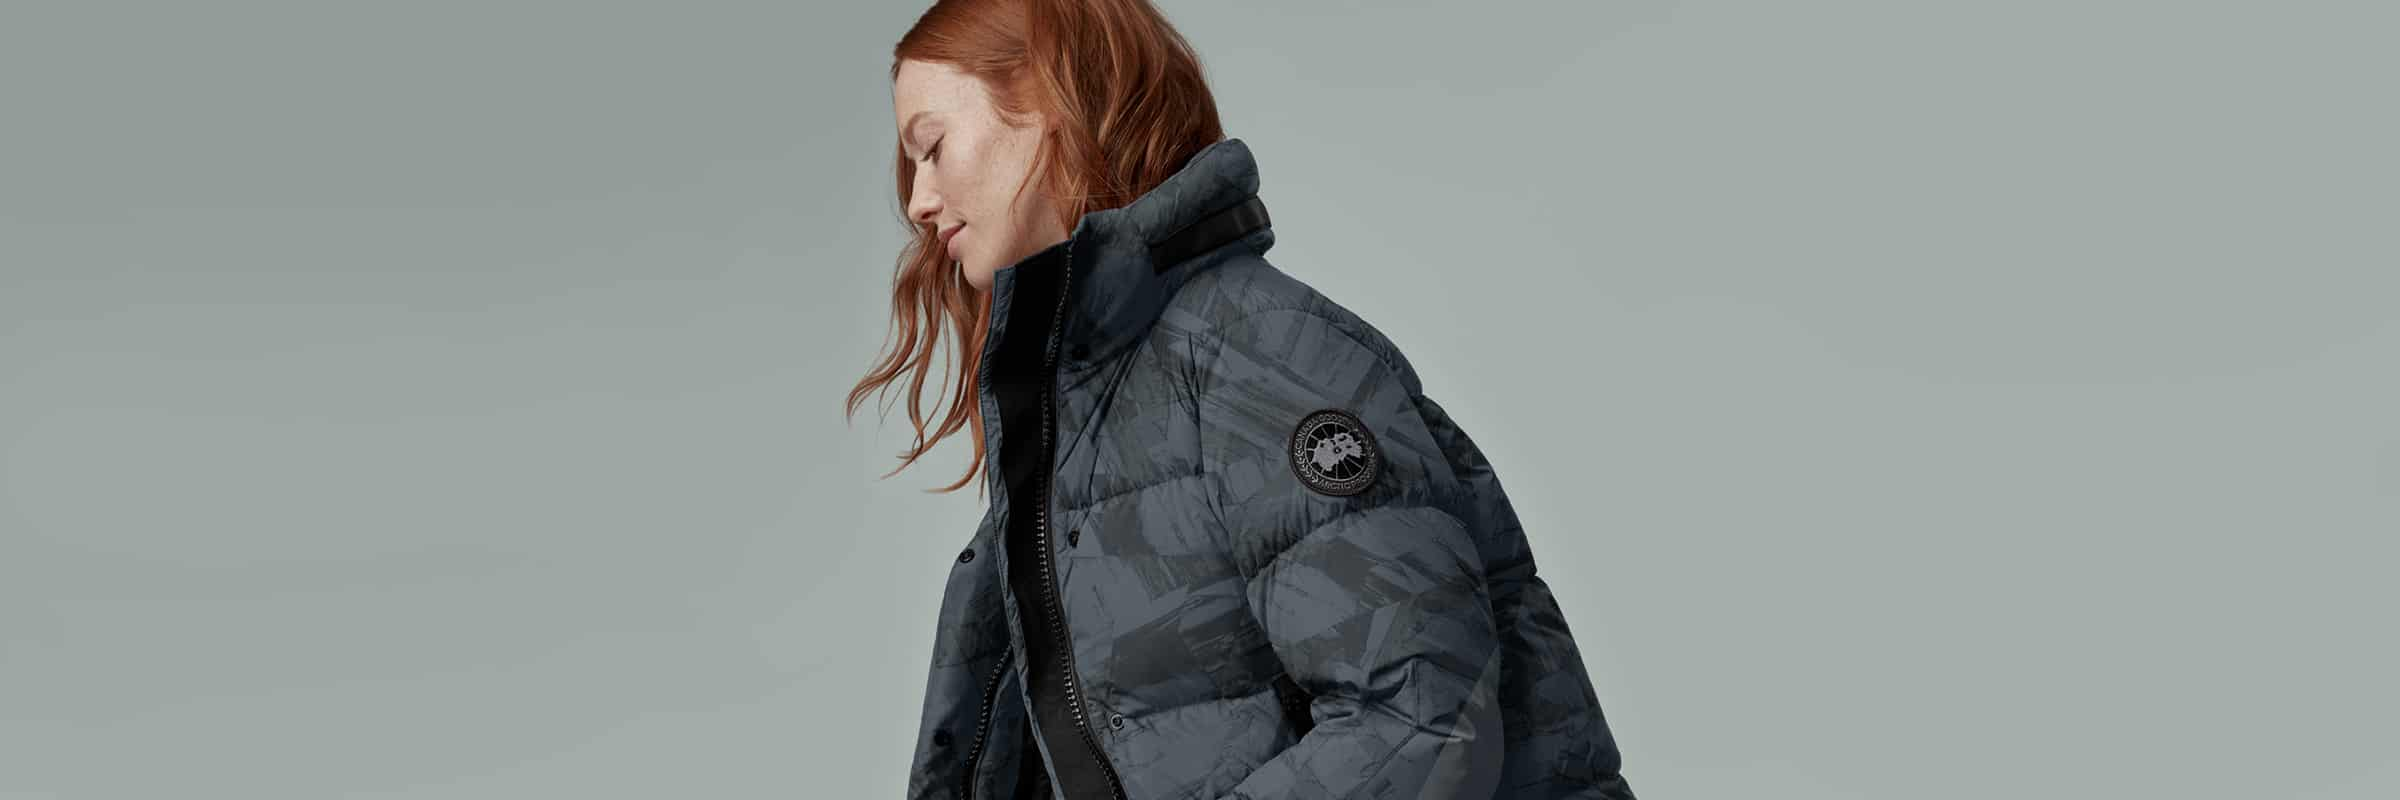 Why is Canada Goose So Expensive? A Closer Look.